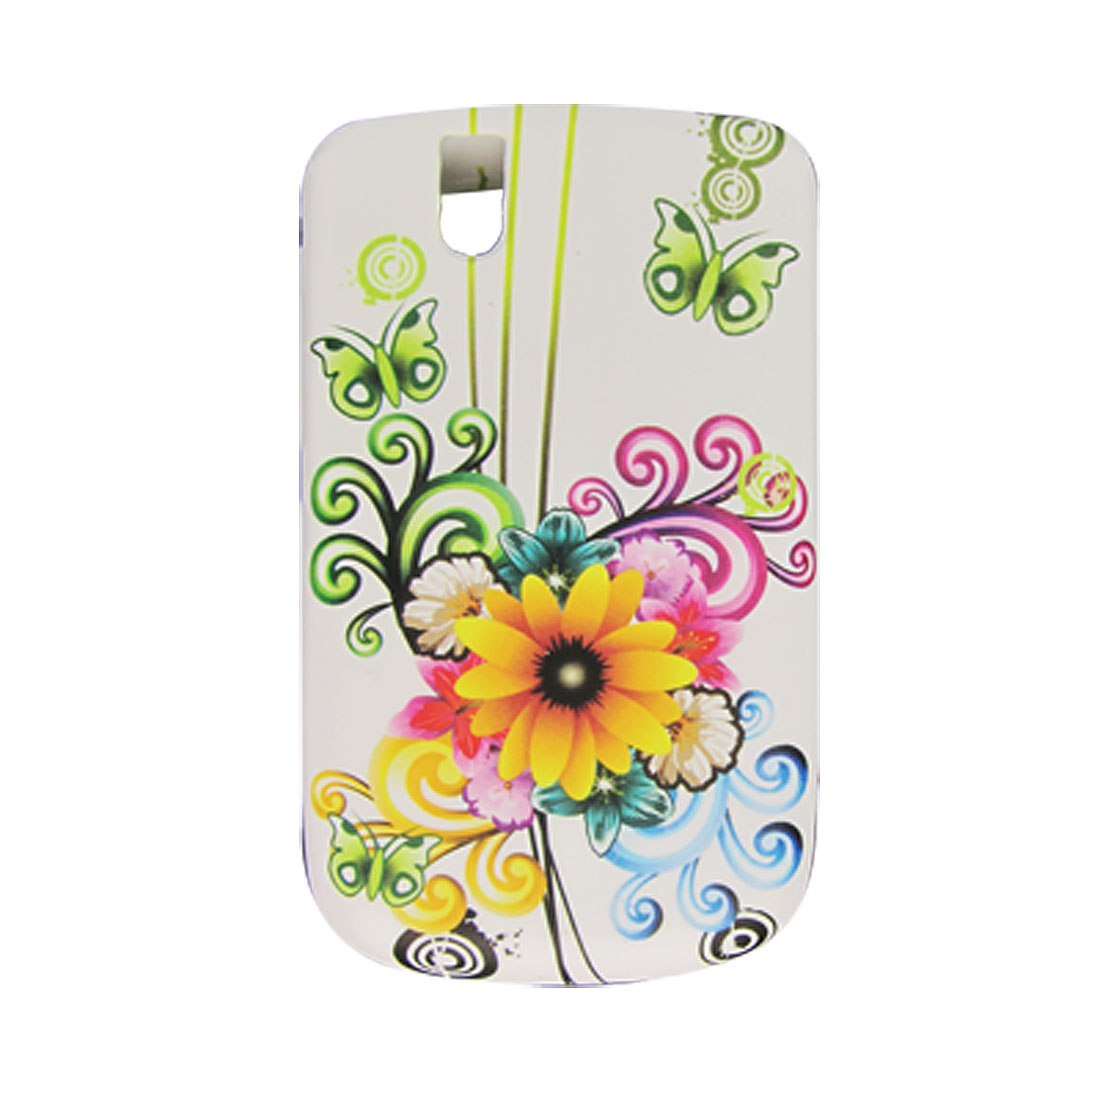 Soft Plastic Chrysanthemum Butterfly Style White Cover for BlackBerry 9630